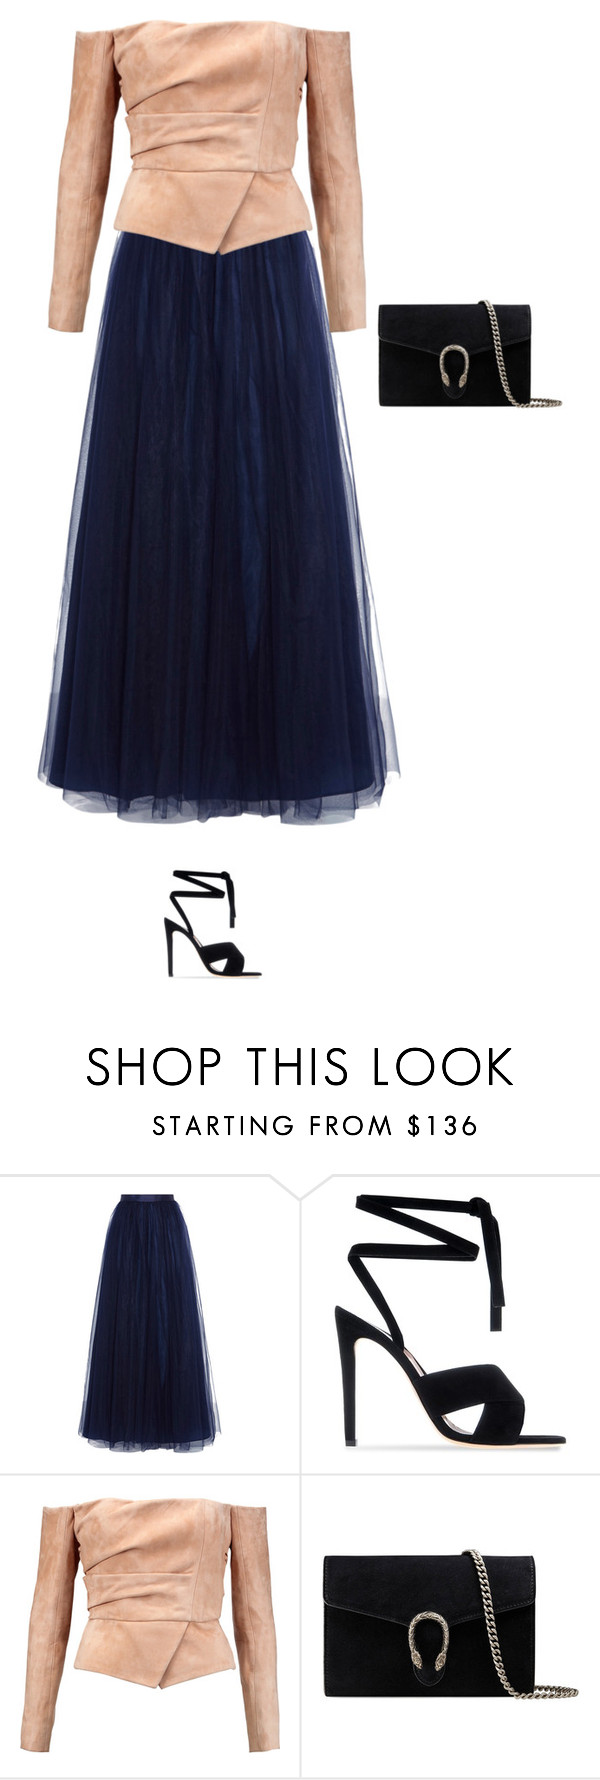 """""""Untitled #4841"""" by linda56draco ❤ liked on Polyvore featuring Gianvito Rossi, Balmain and Gucci"""